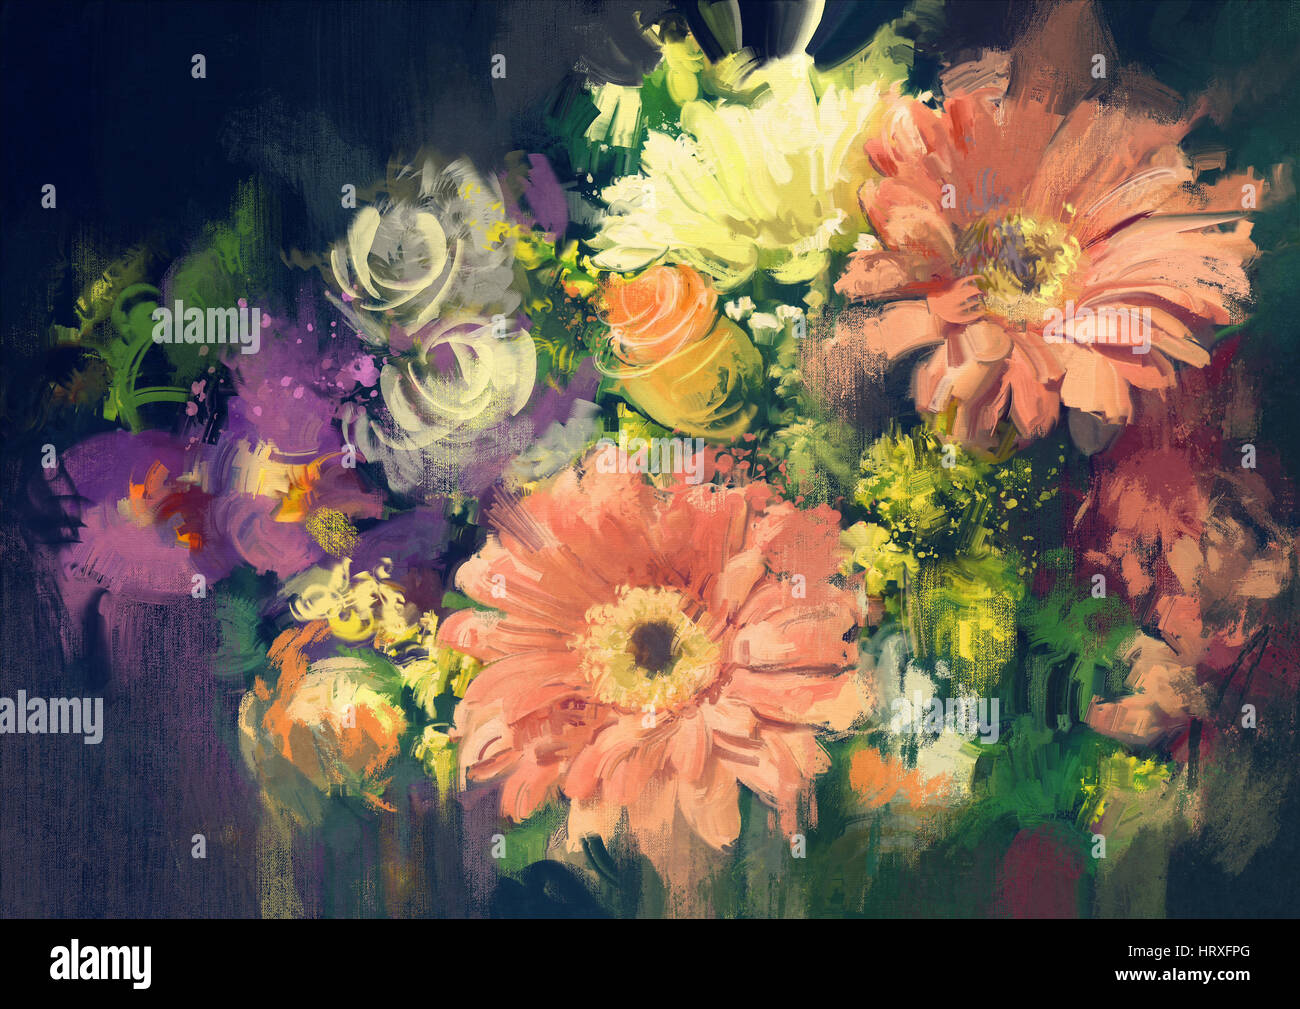 bouquet flowers in oil painting style,illustration - Stock Image